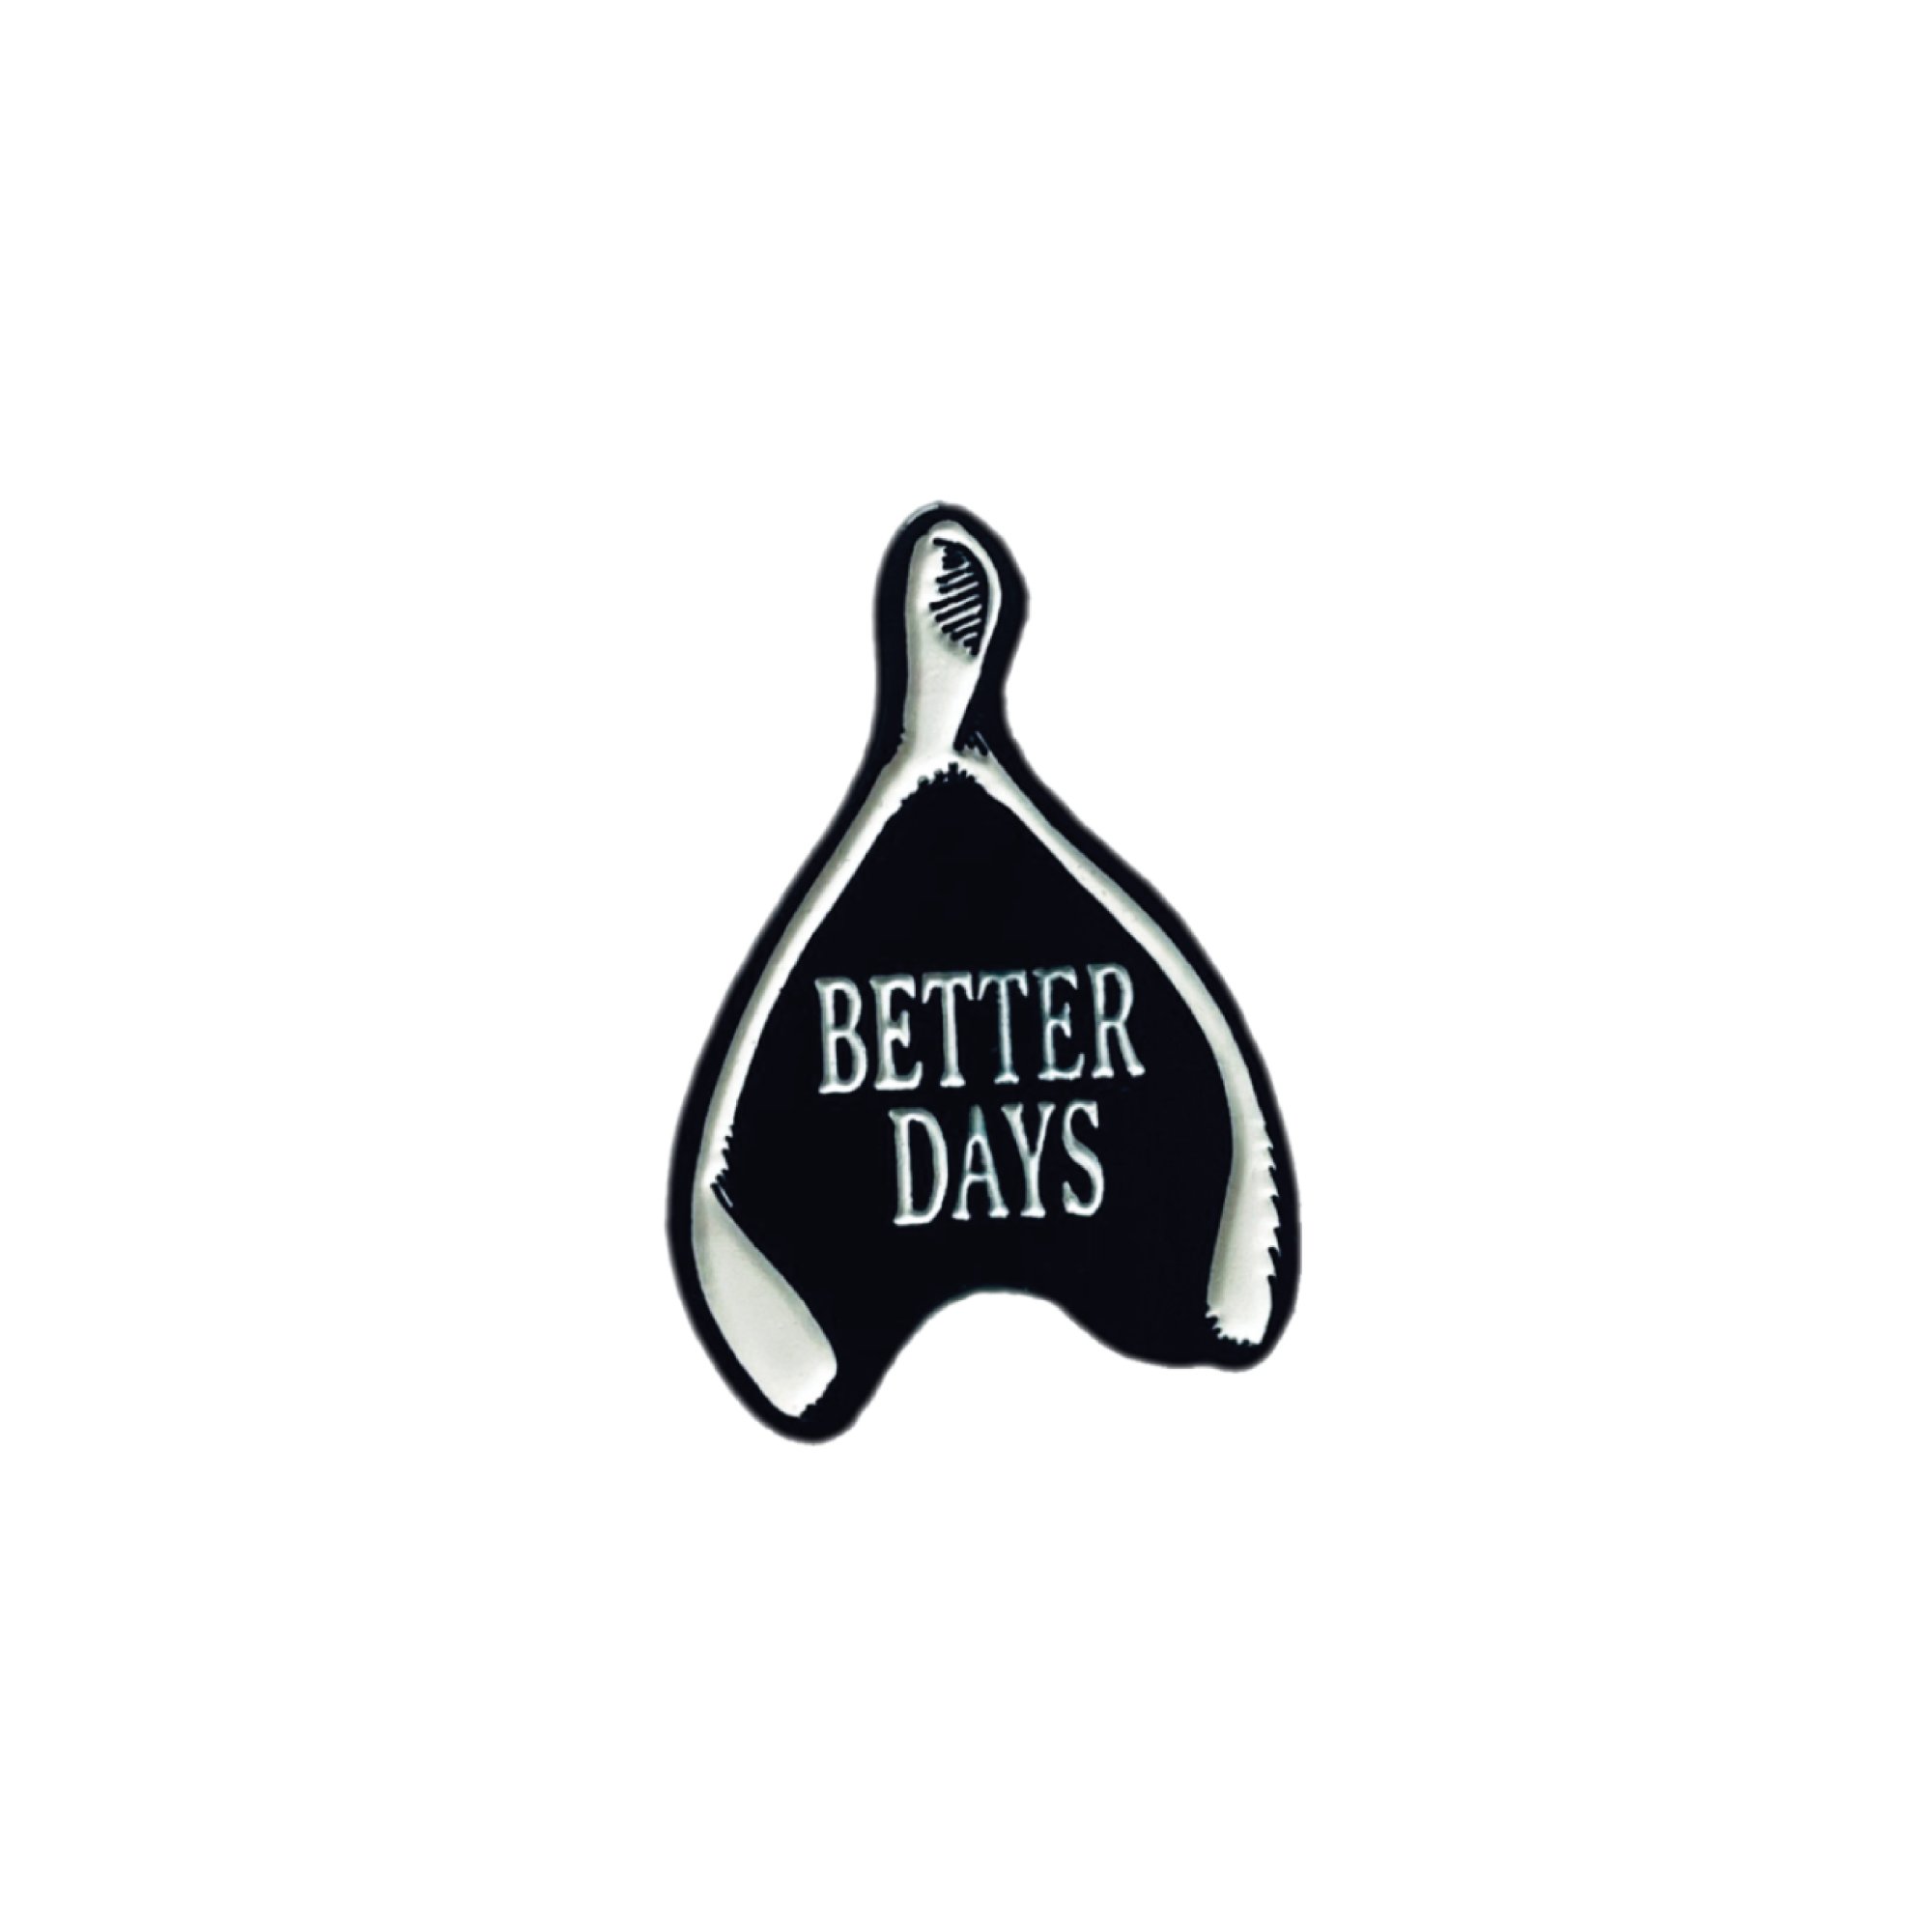 Wishing for better days wishbone pin